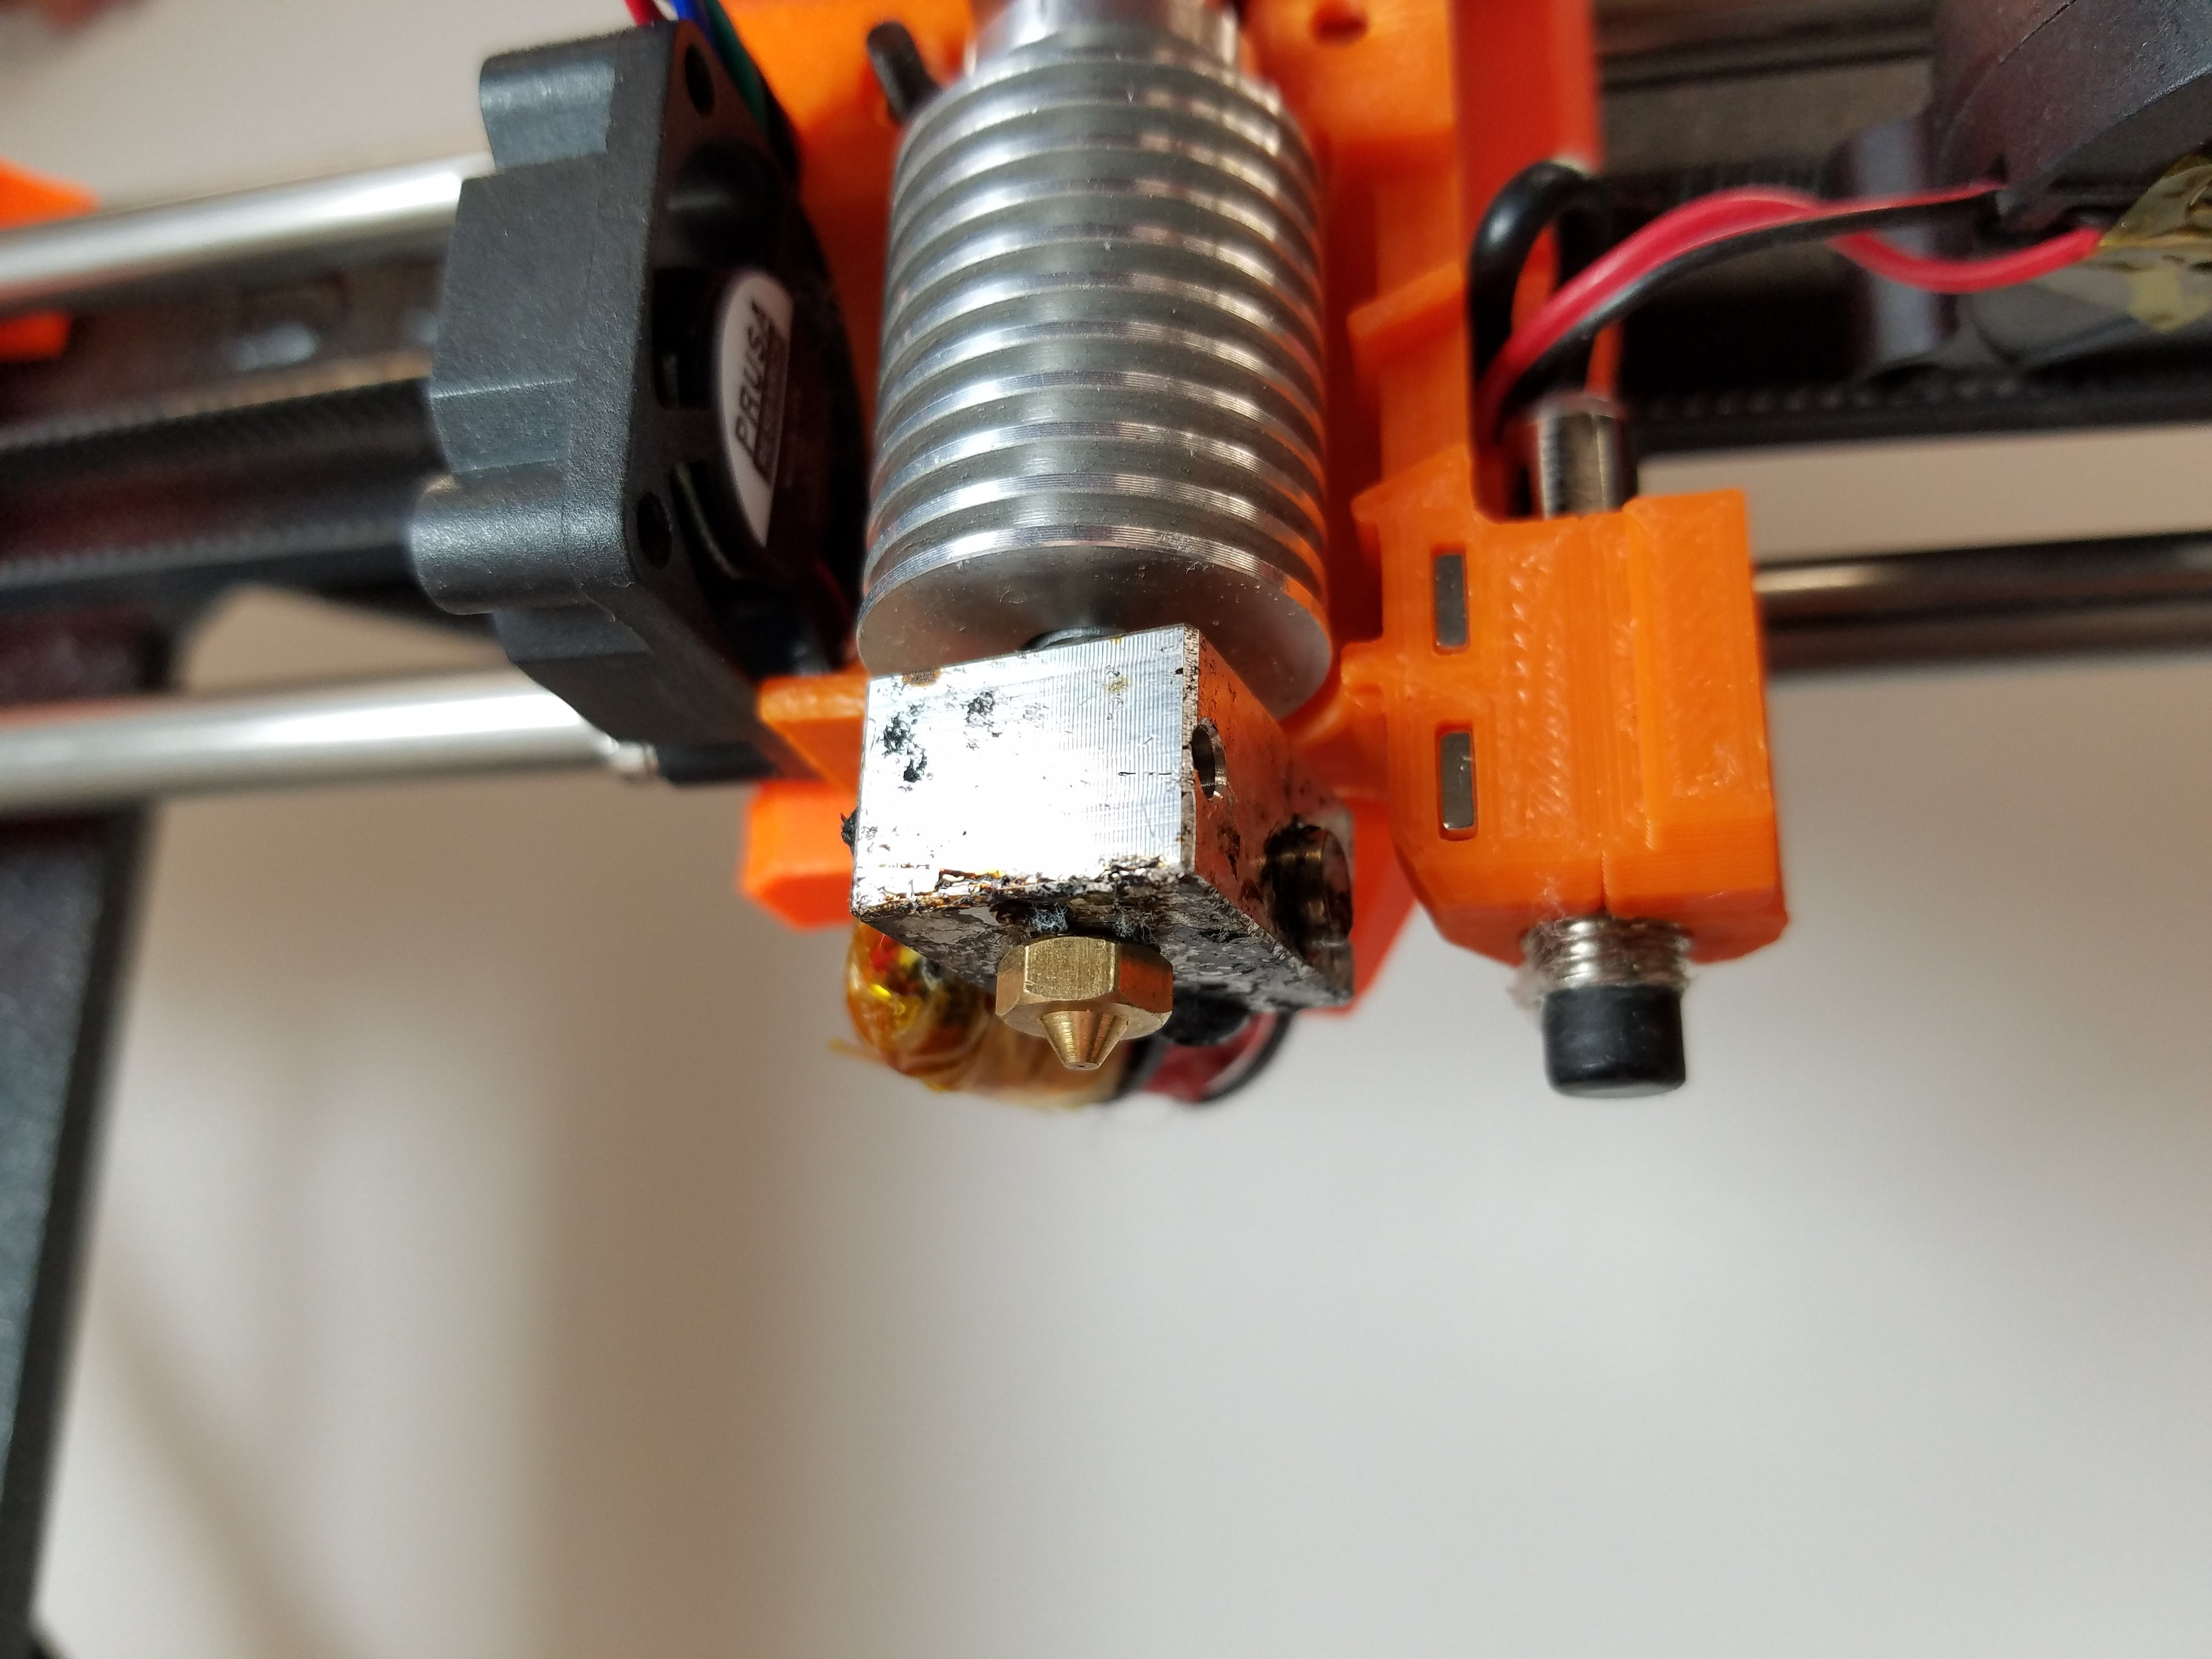 Prusa i3 Mk2 Nozzle Replacement - iFixit Repair Guide